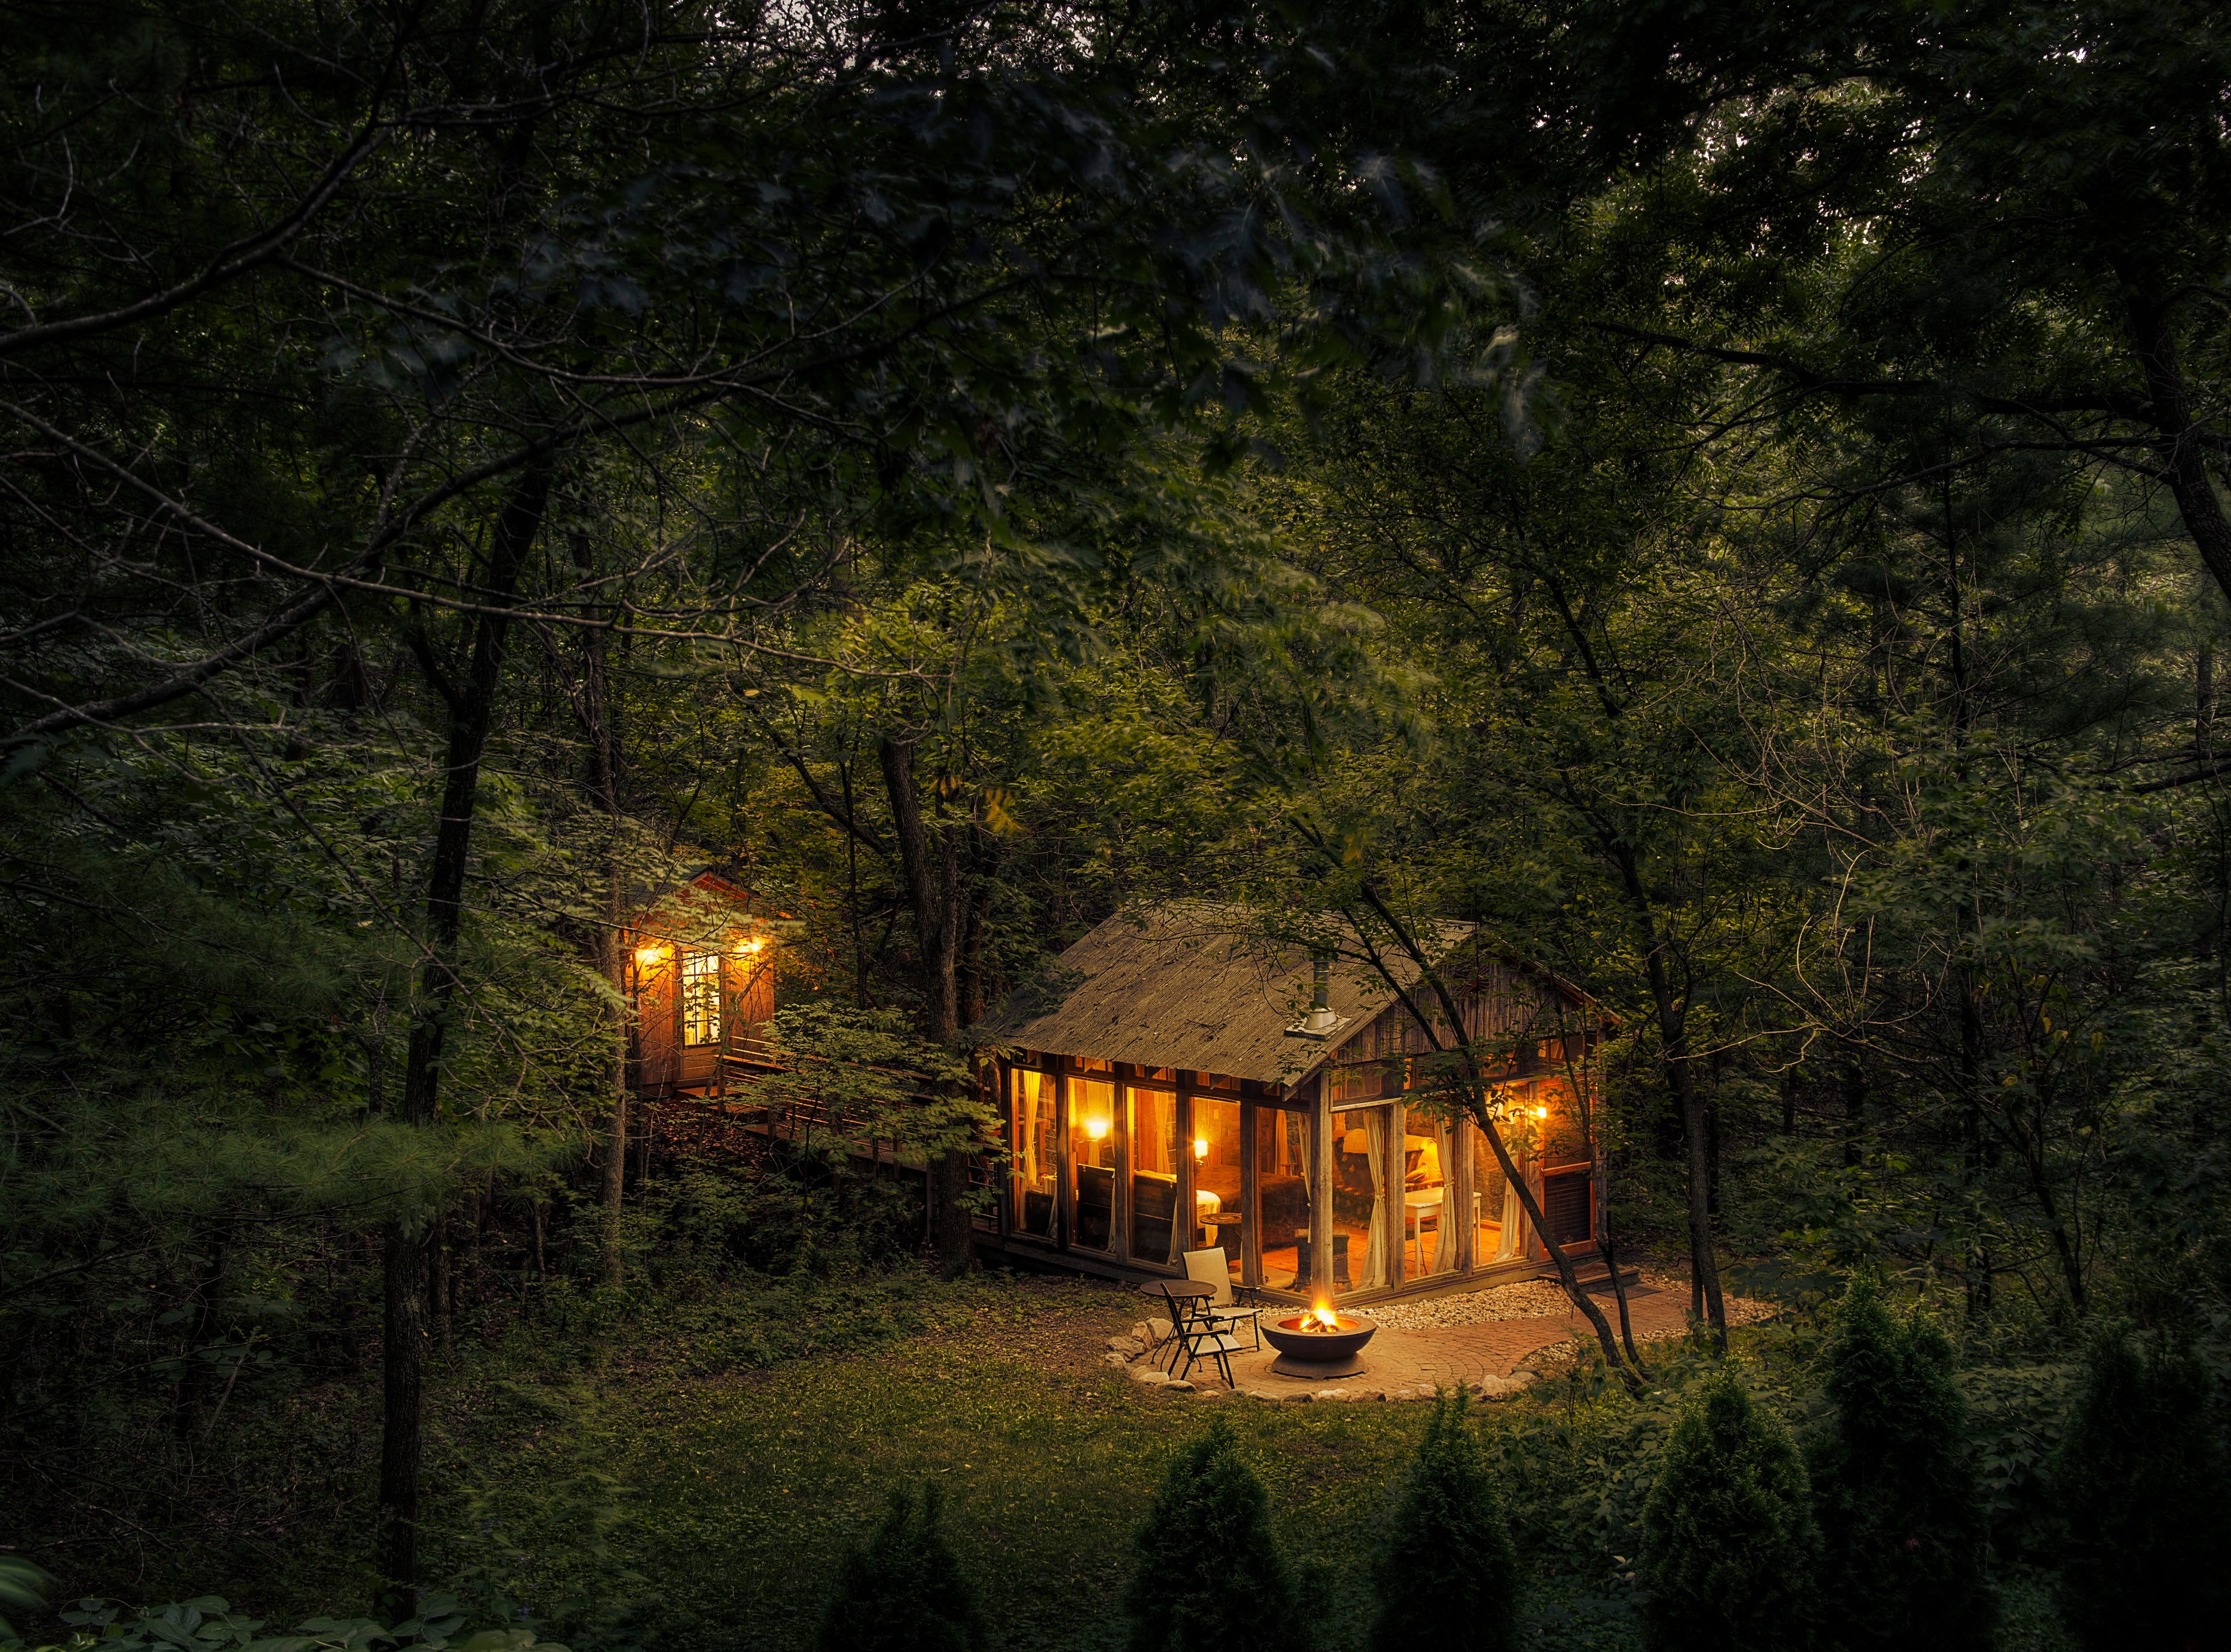 The Glass House put Candlewood Cabins on the map when Susan and Norbert Calnin built the one-room house and began renting it out in 2006. They later added a detached bathroom and kitchenette accessible via a footbridge.